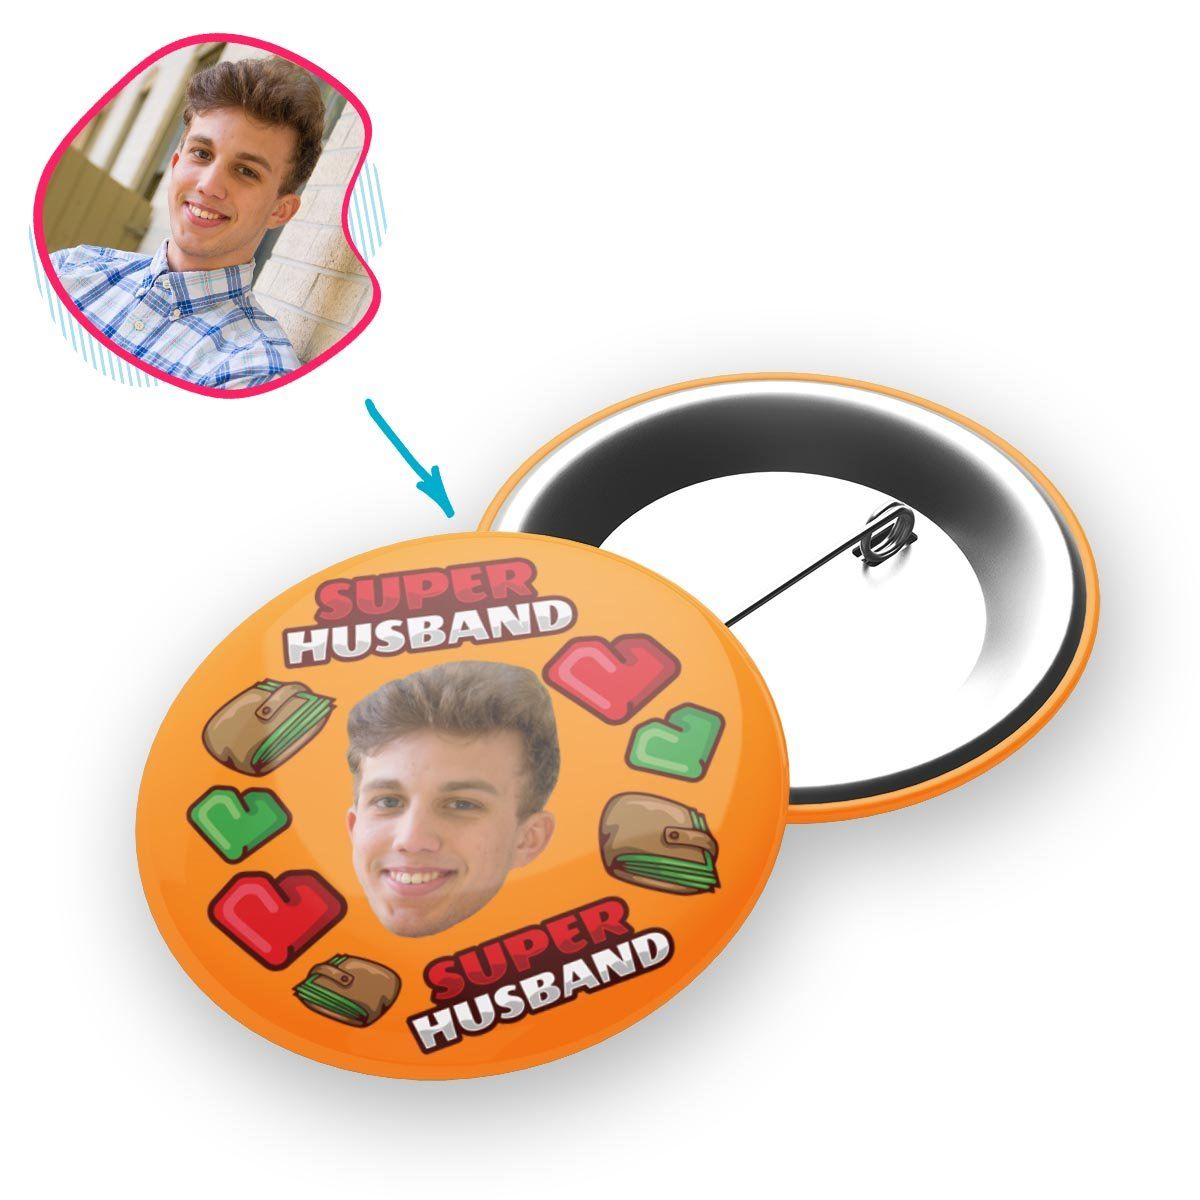 Orange Husband personalized pin with photo of face printed on it